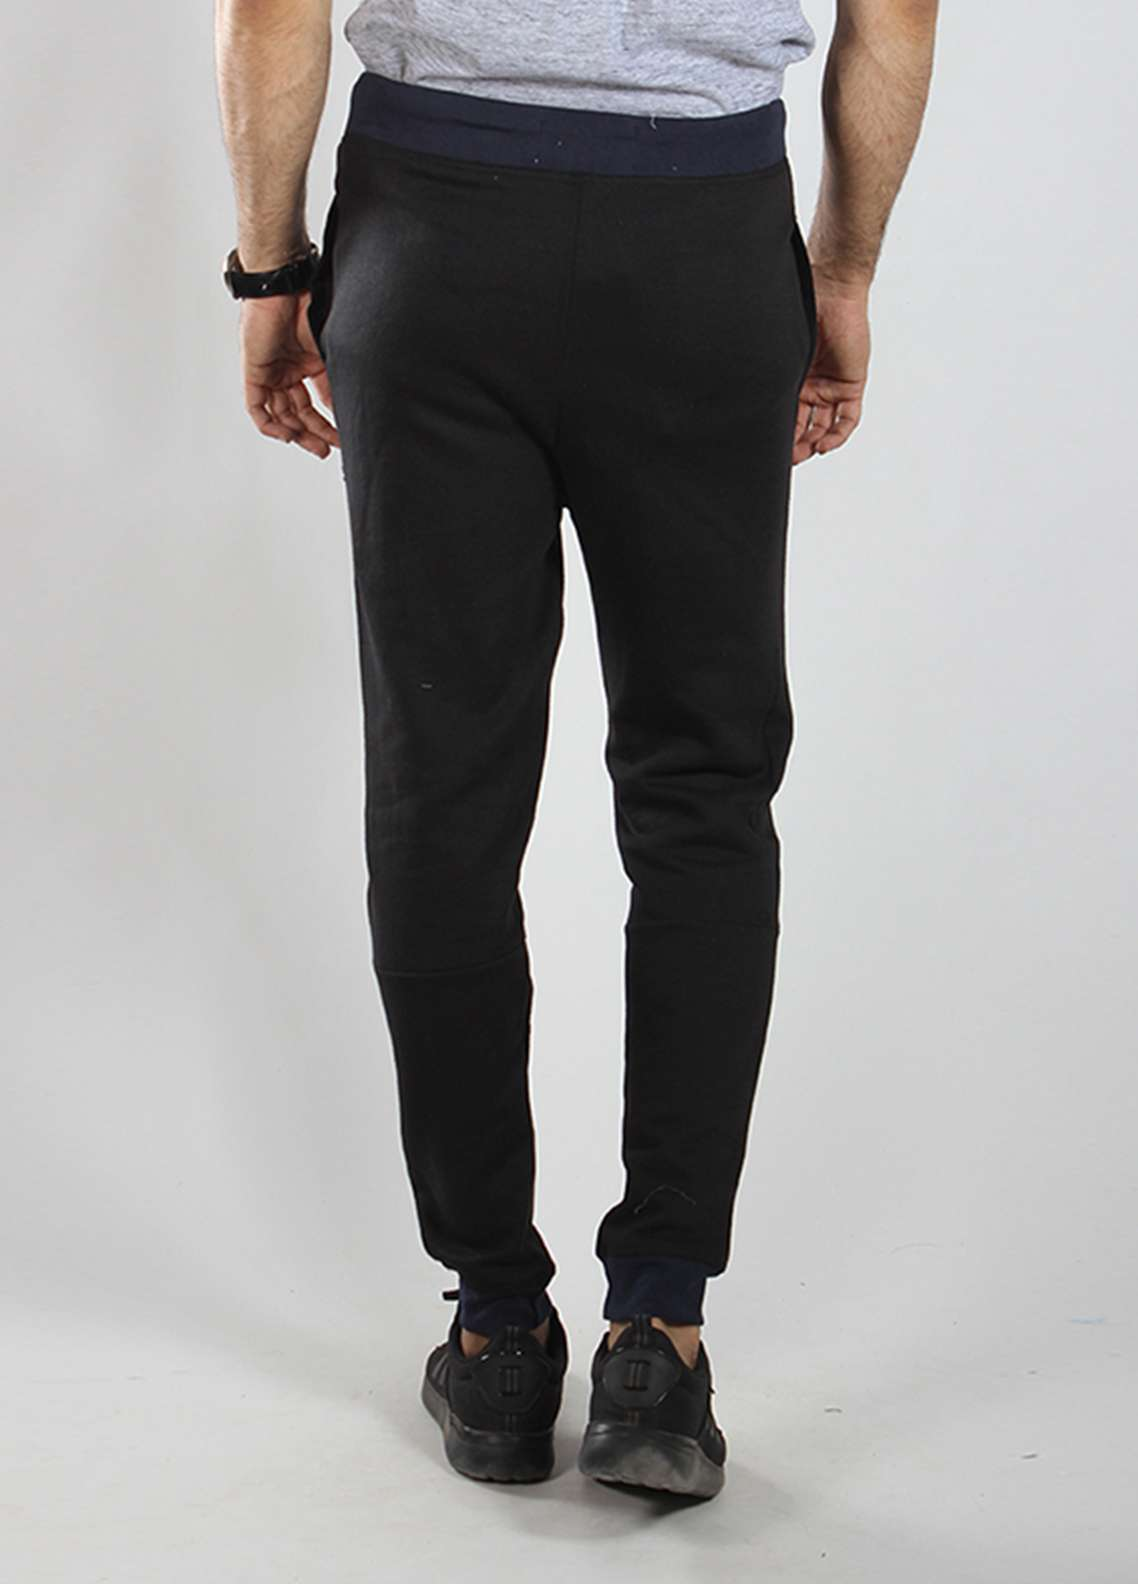 Red Tree Knitted Casual Trousers for Men - Black RTM18TR 6022